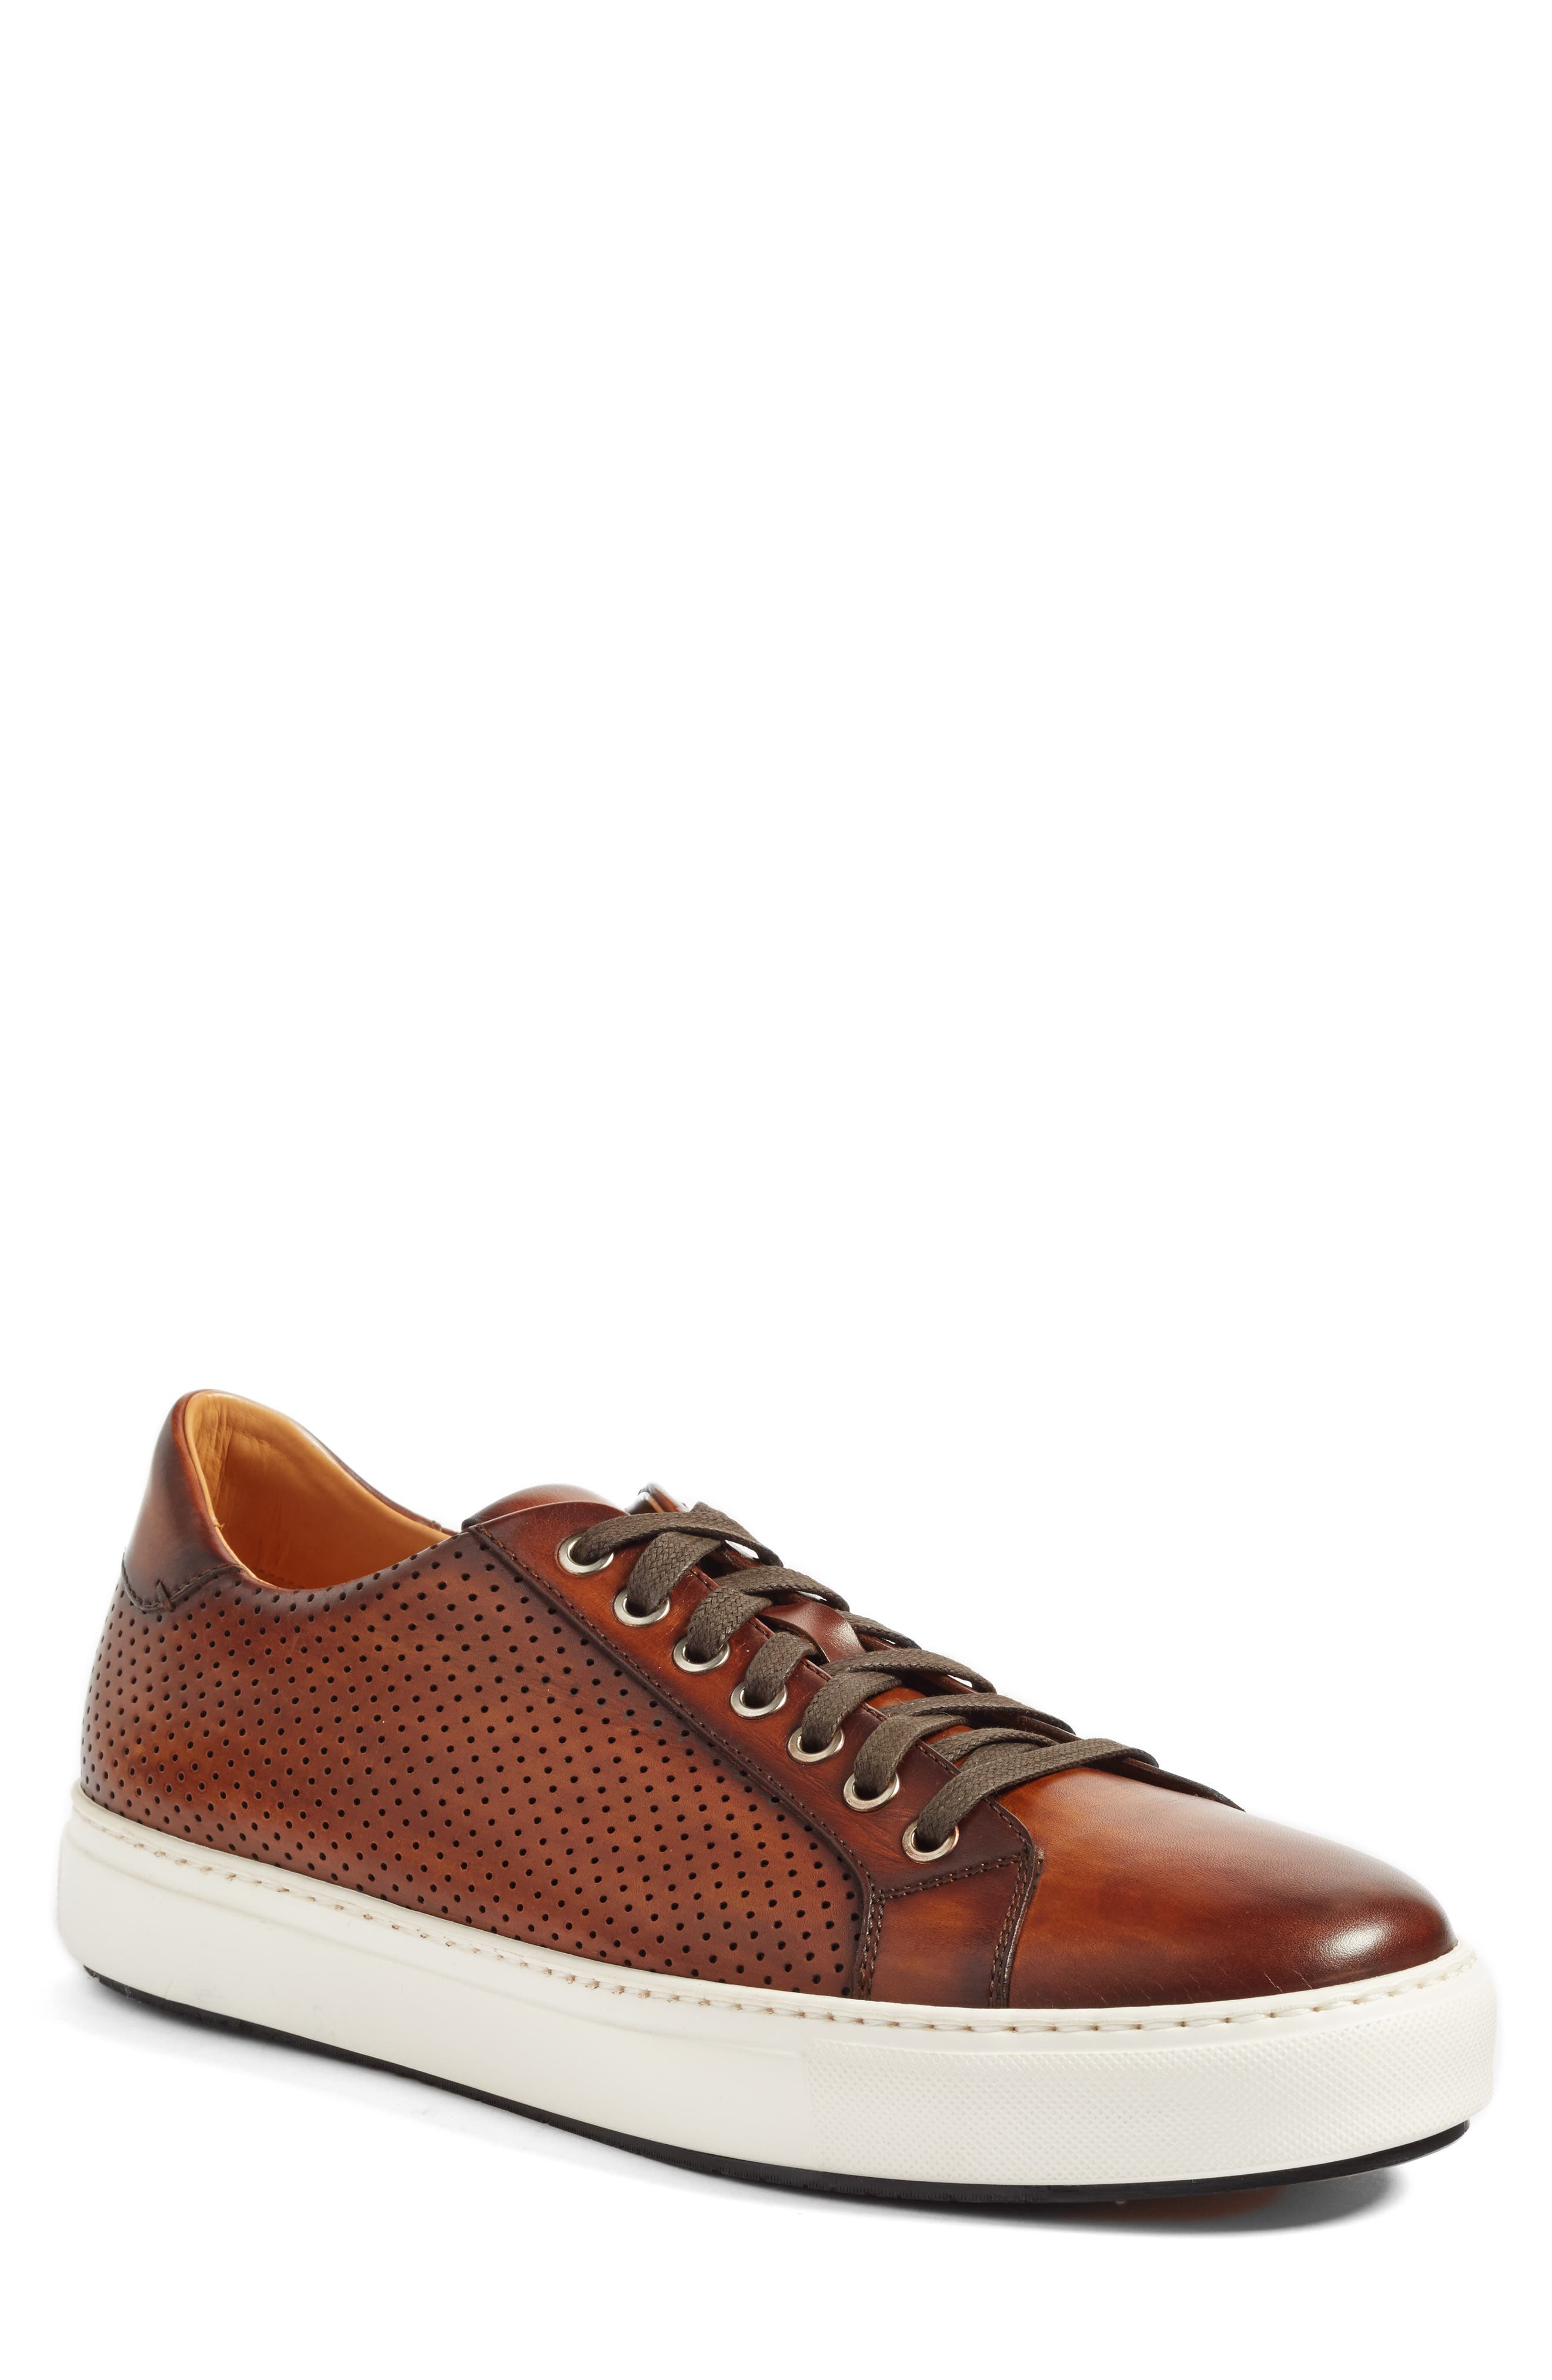 Alternate Image 1 Selected - Magnanni 'Blanco' Sneaker (Men)